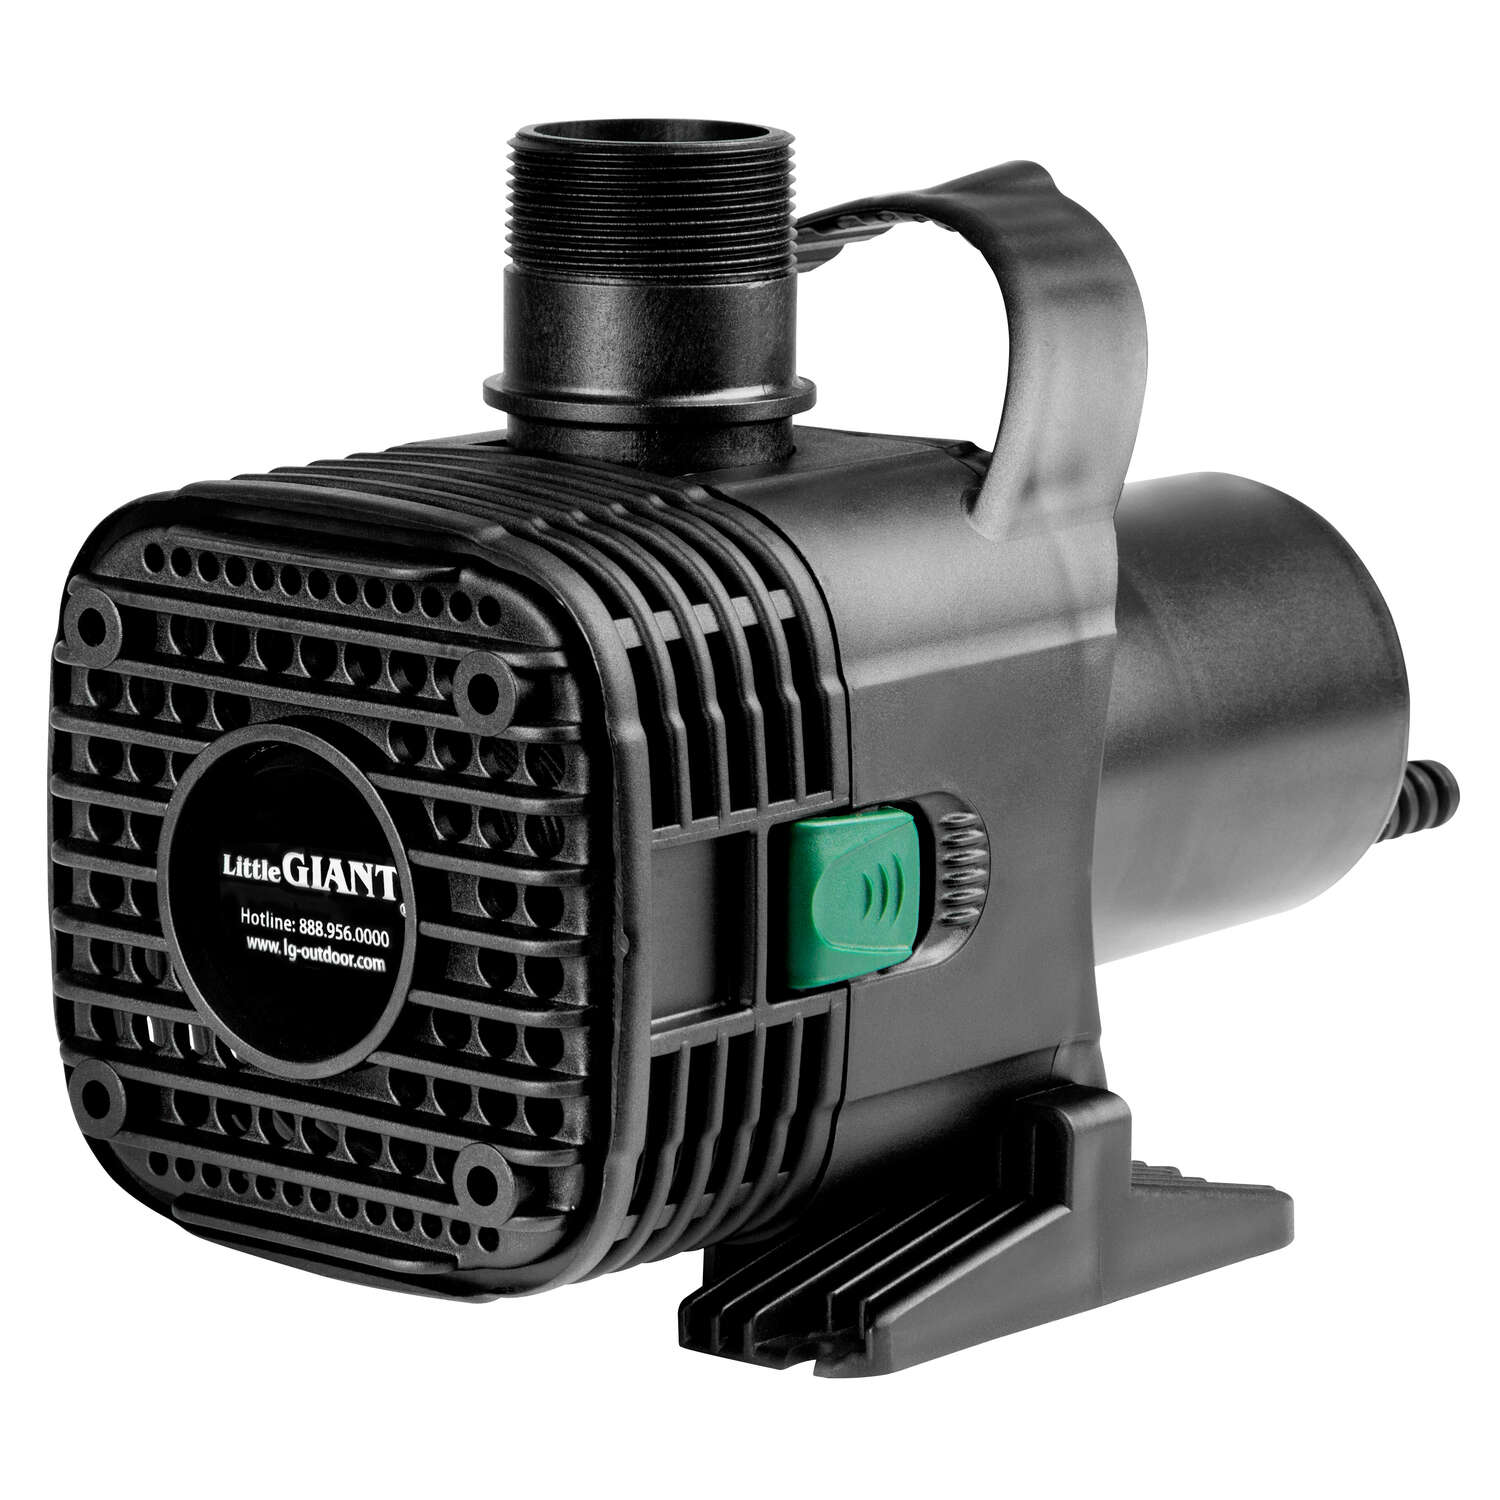 Little Giant  F-series Wet Rotor  Plastic  Wet Rotor Pump  1/3 hp 4060 gph 115 volts